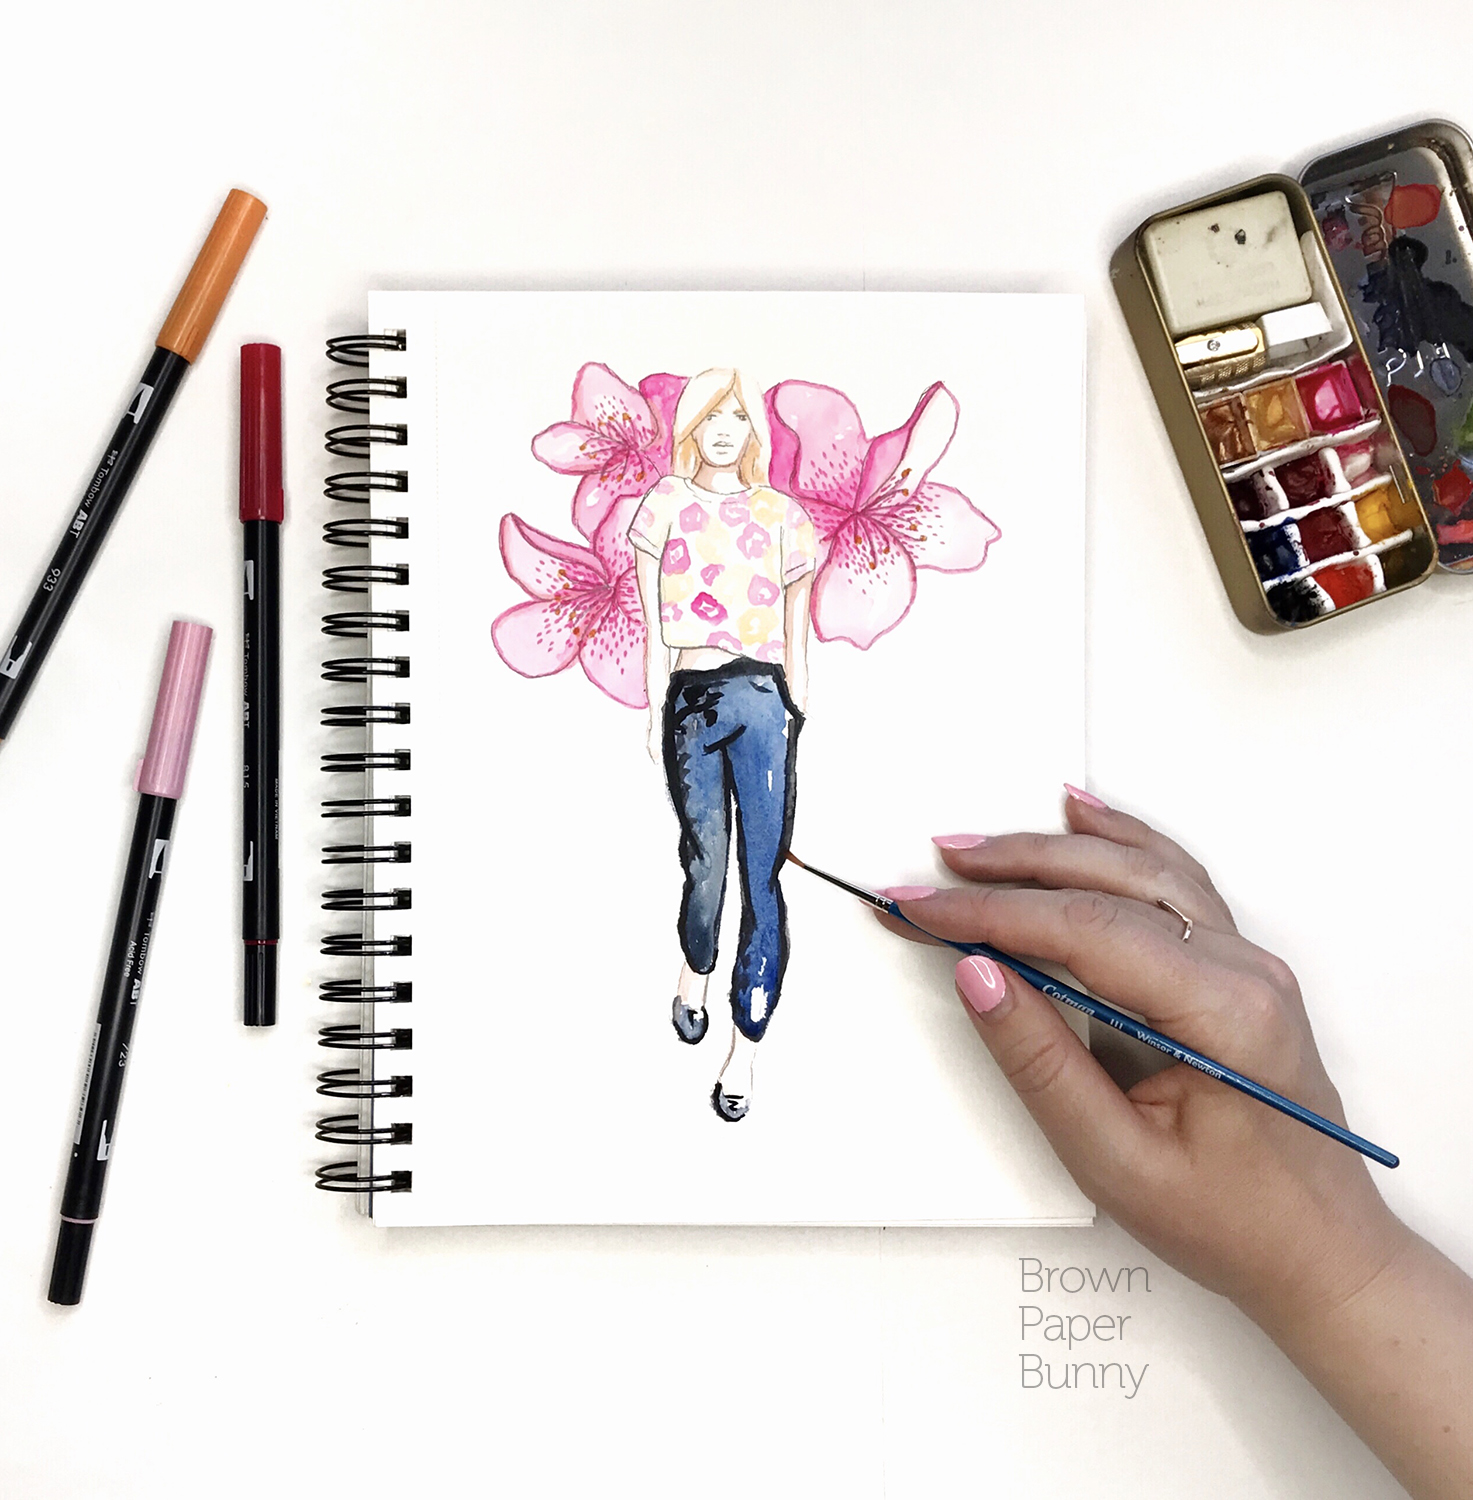 Watercolor fashion illustration, personal project.